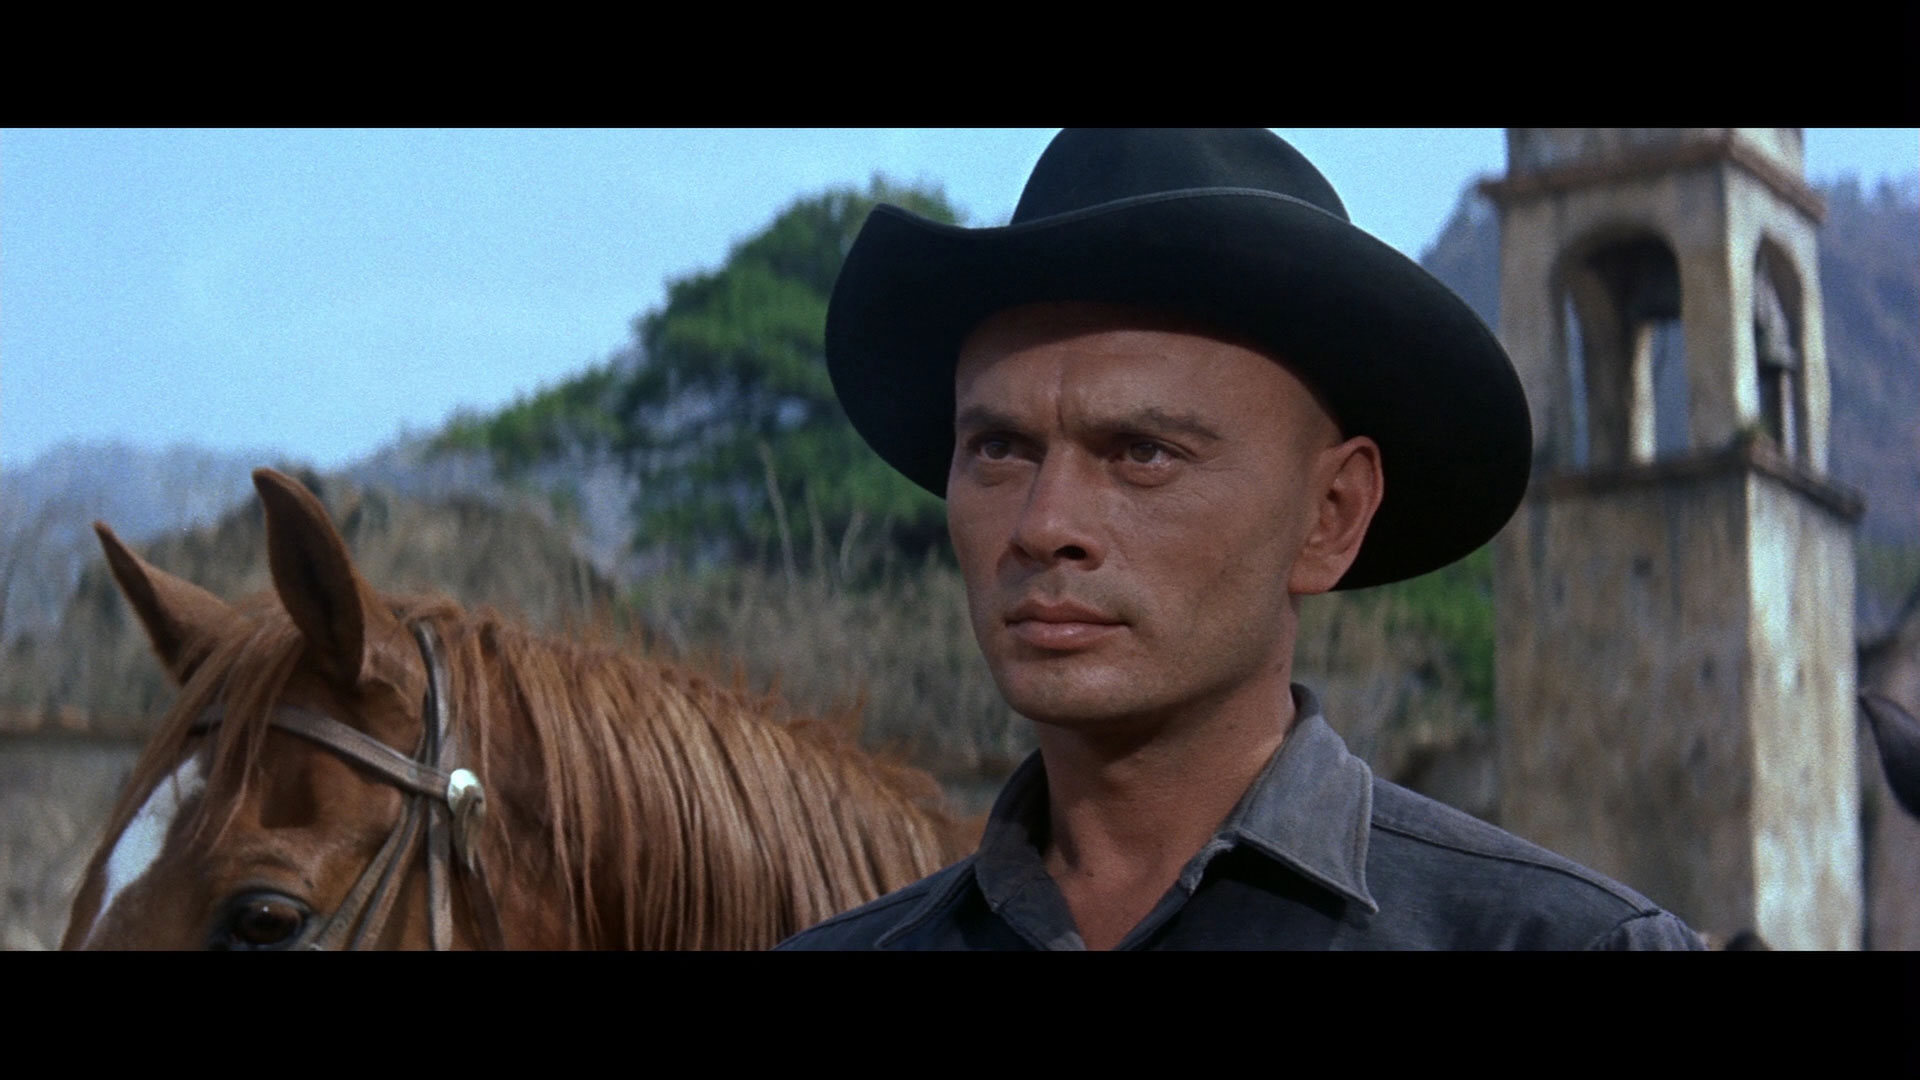 Column Yul Brynner The First Terminator A Film History